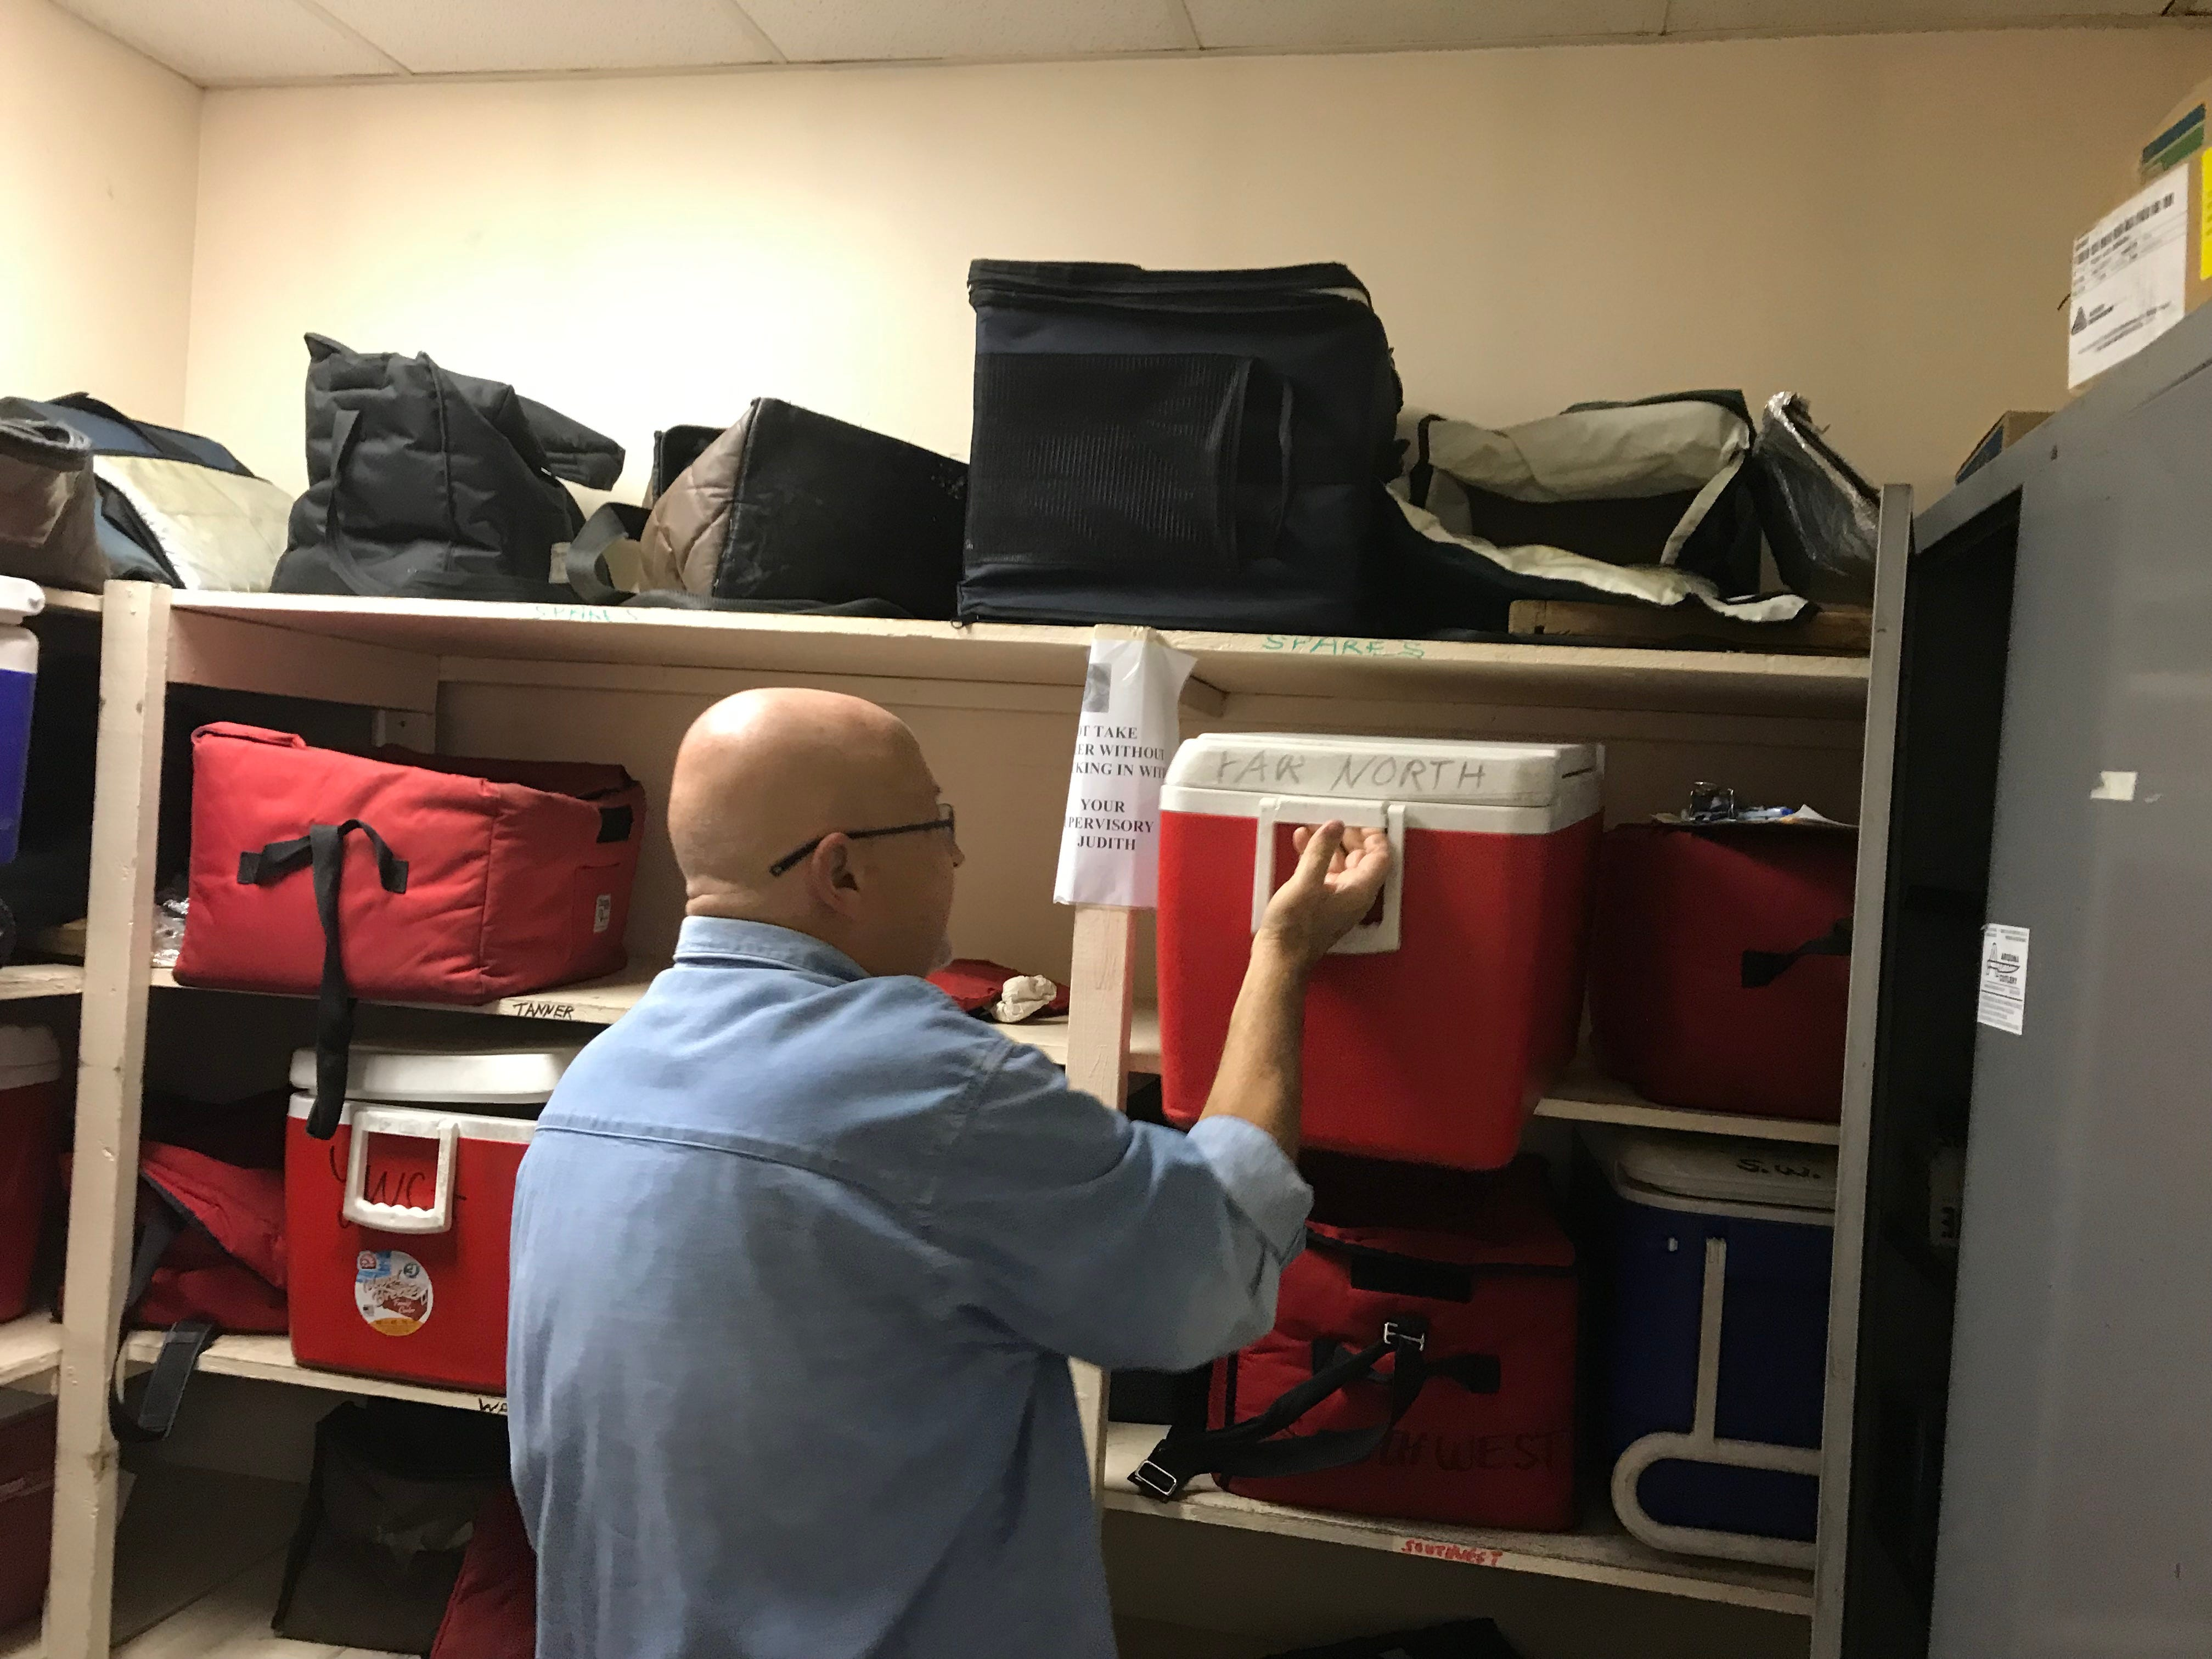 Dennis O'Melia, a 69-year-old retiree, grabs a cooler he'll need to store milk, juice and frozen meals along his Meals on Wheels route.